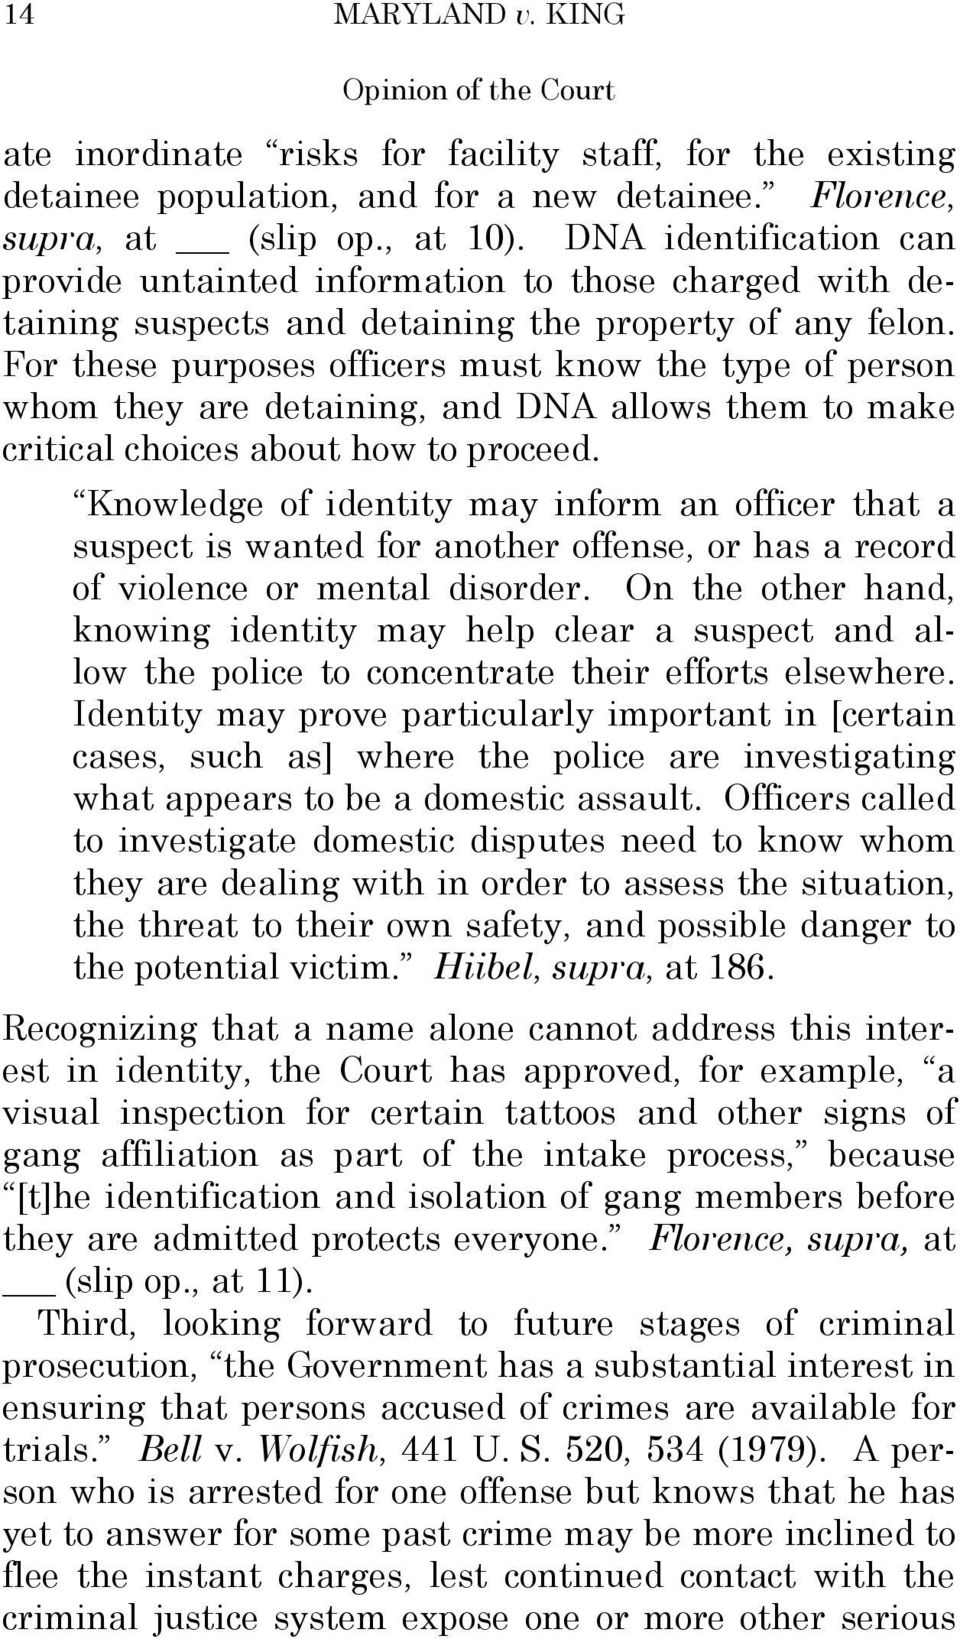 For these purposes officers must know the type of person whom they are detaining, and DNA allows them to make critical choices about how to proceed.